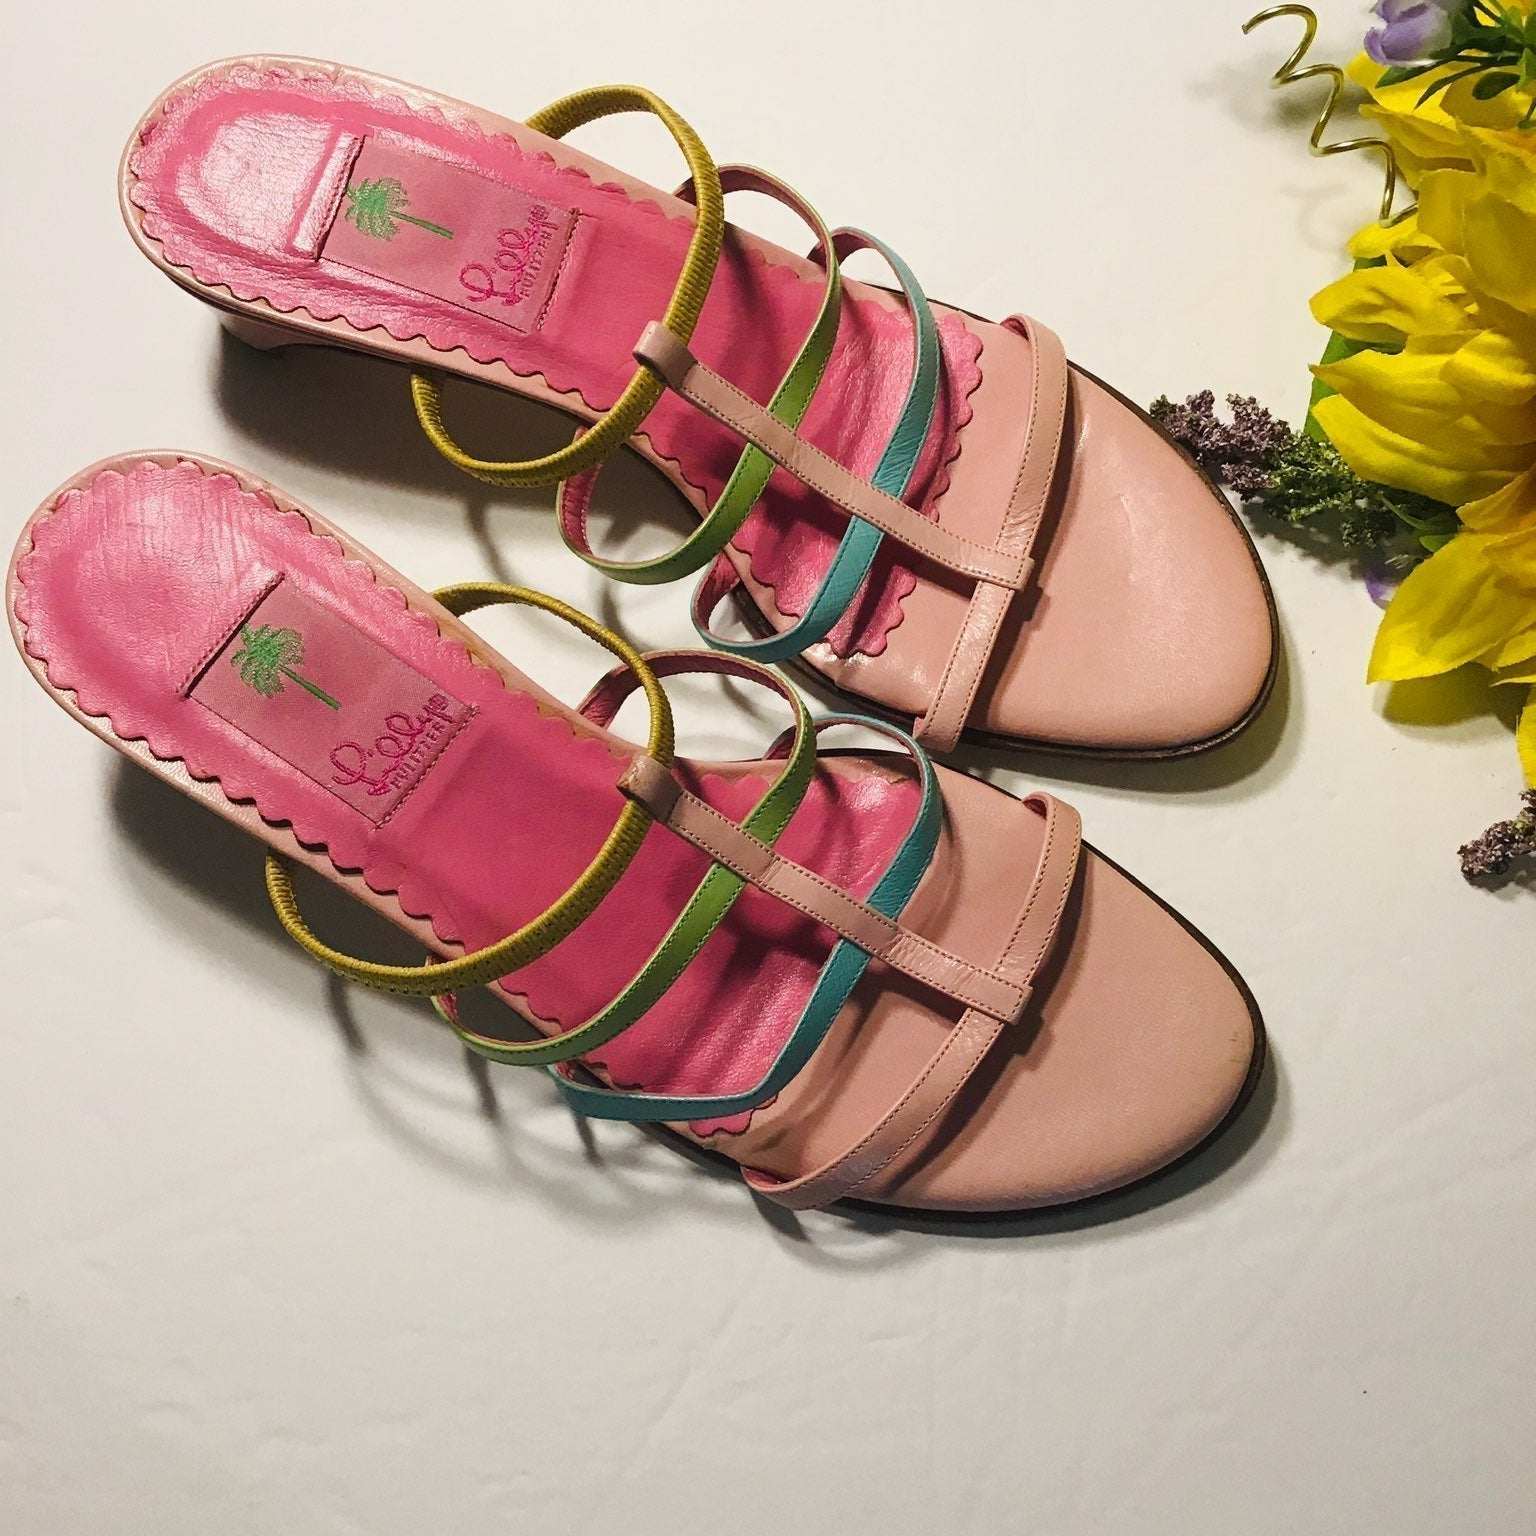 Lilly Pulitzer sandals NWOT NO BOX